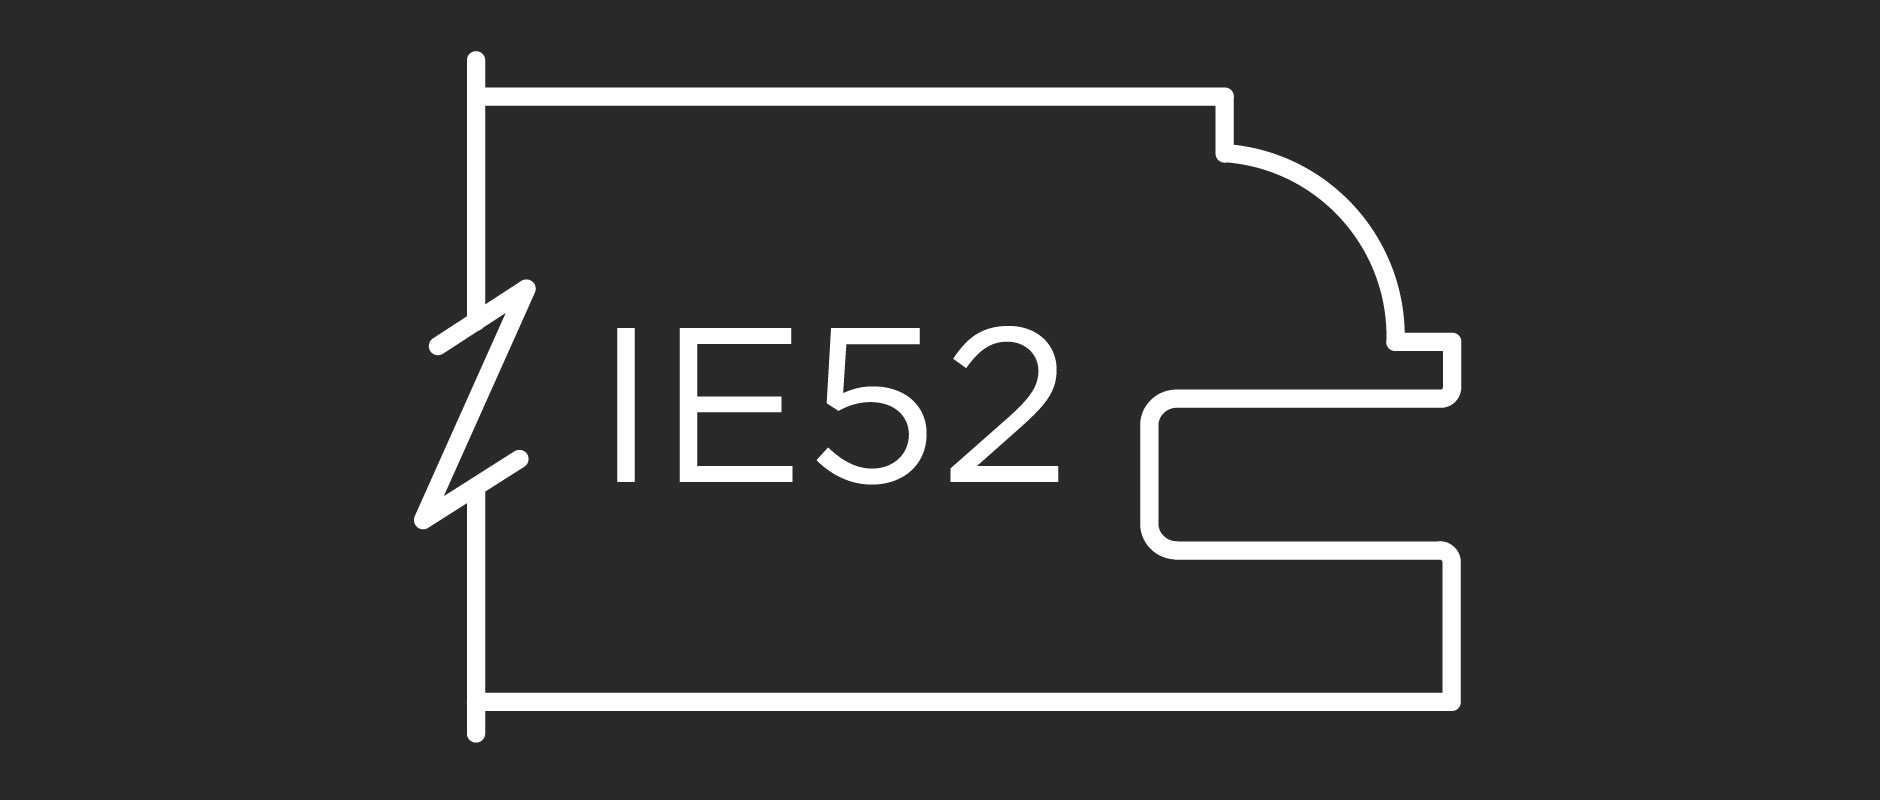 IE52 1-Inch Thick Inside Edge Profile